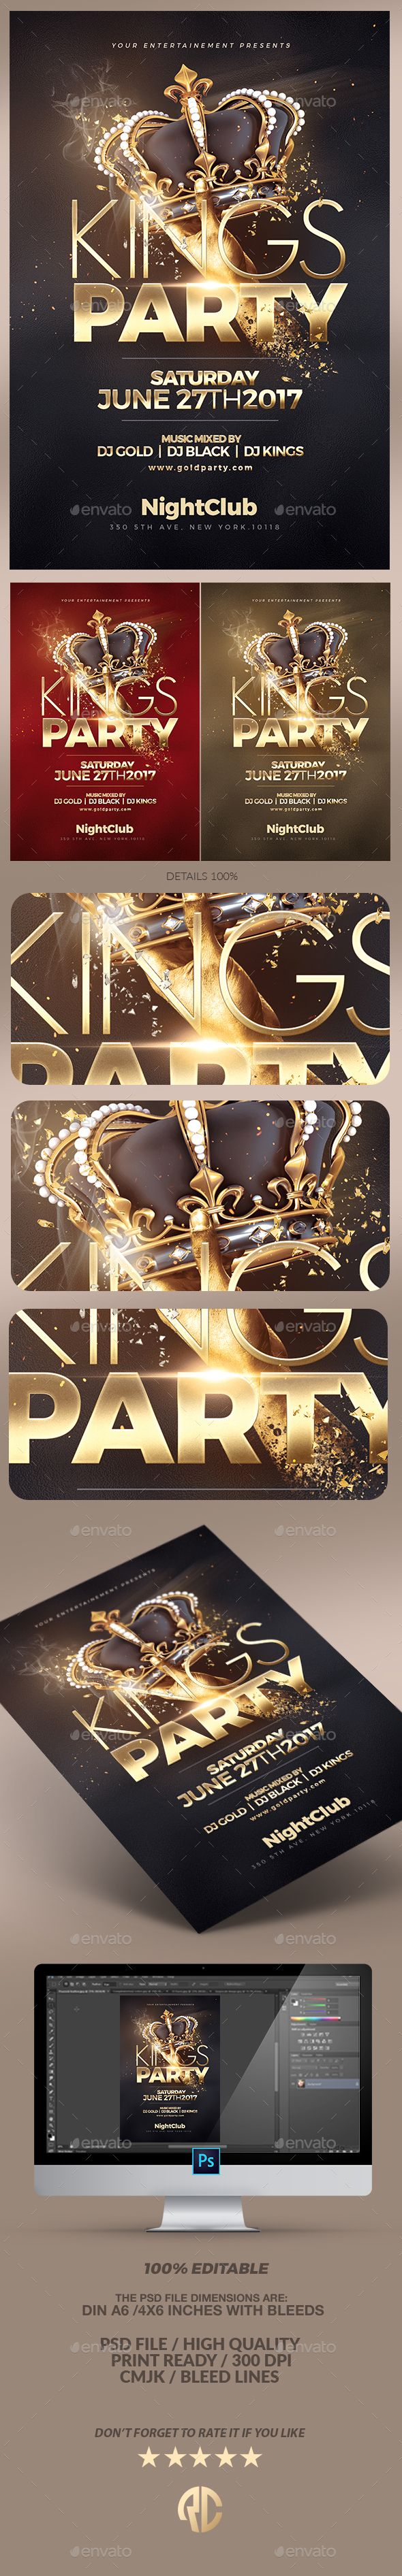 Night of Kings Party Flyer | King club, Club flyers and Party flyer